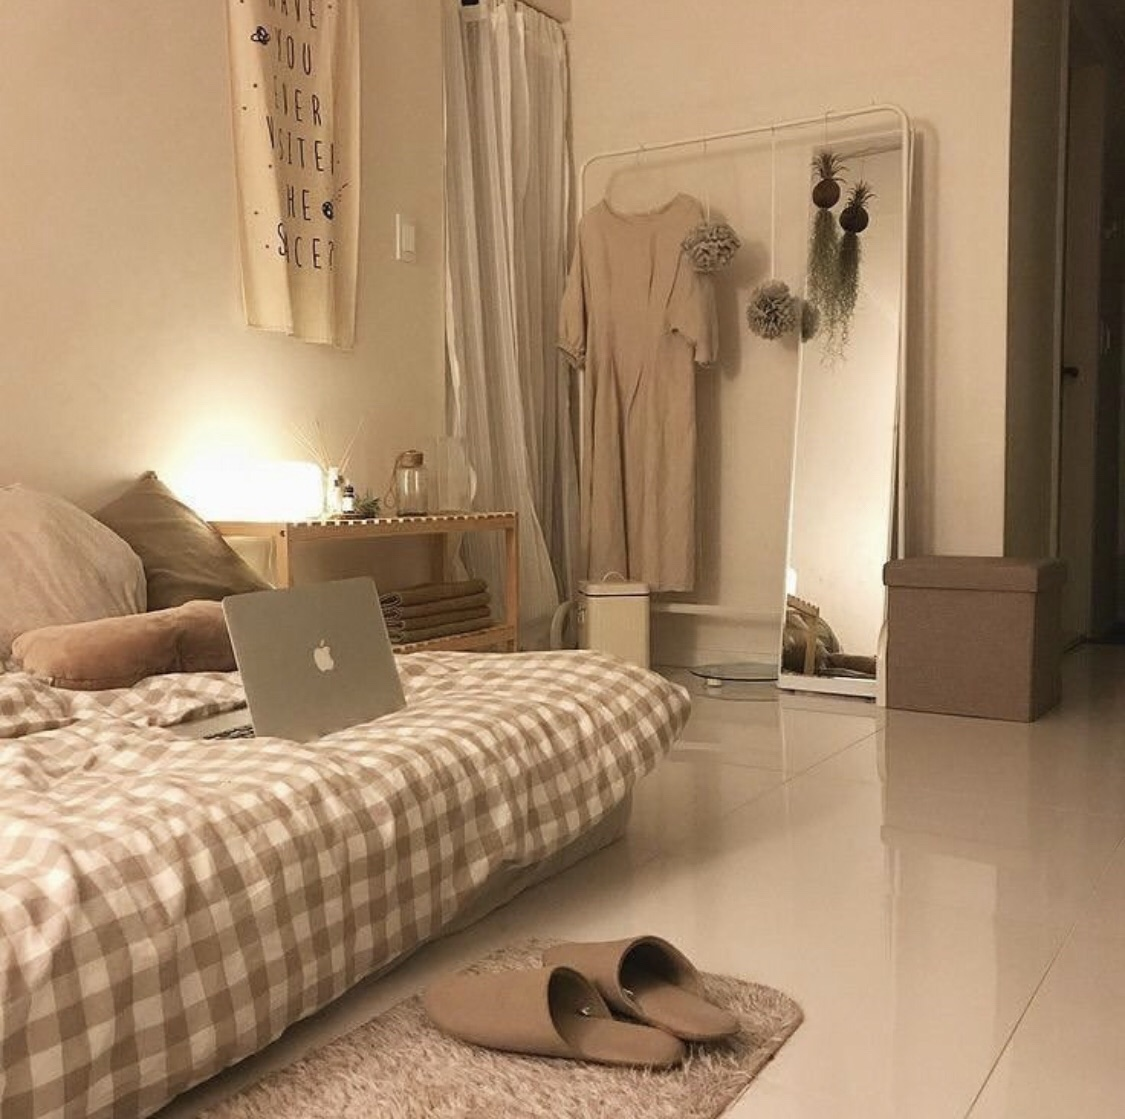 111 Images About Room Korean Style On We Heart It See More About Room Interior And Aesthetic